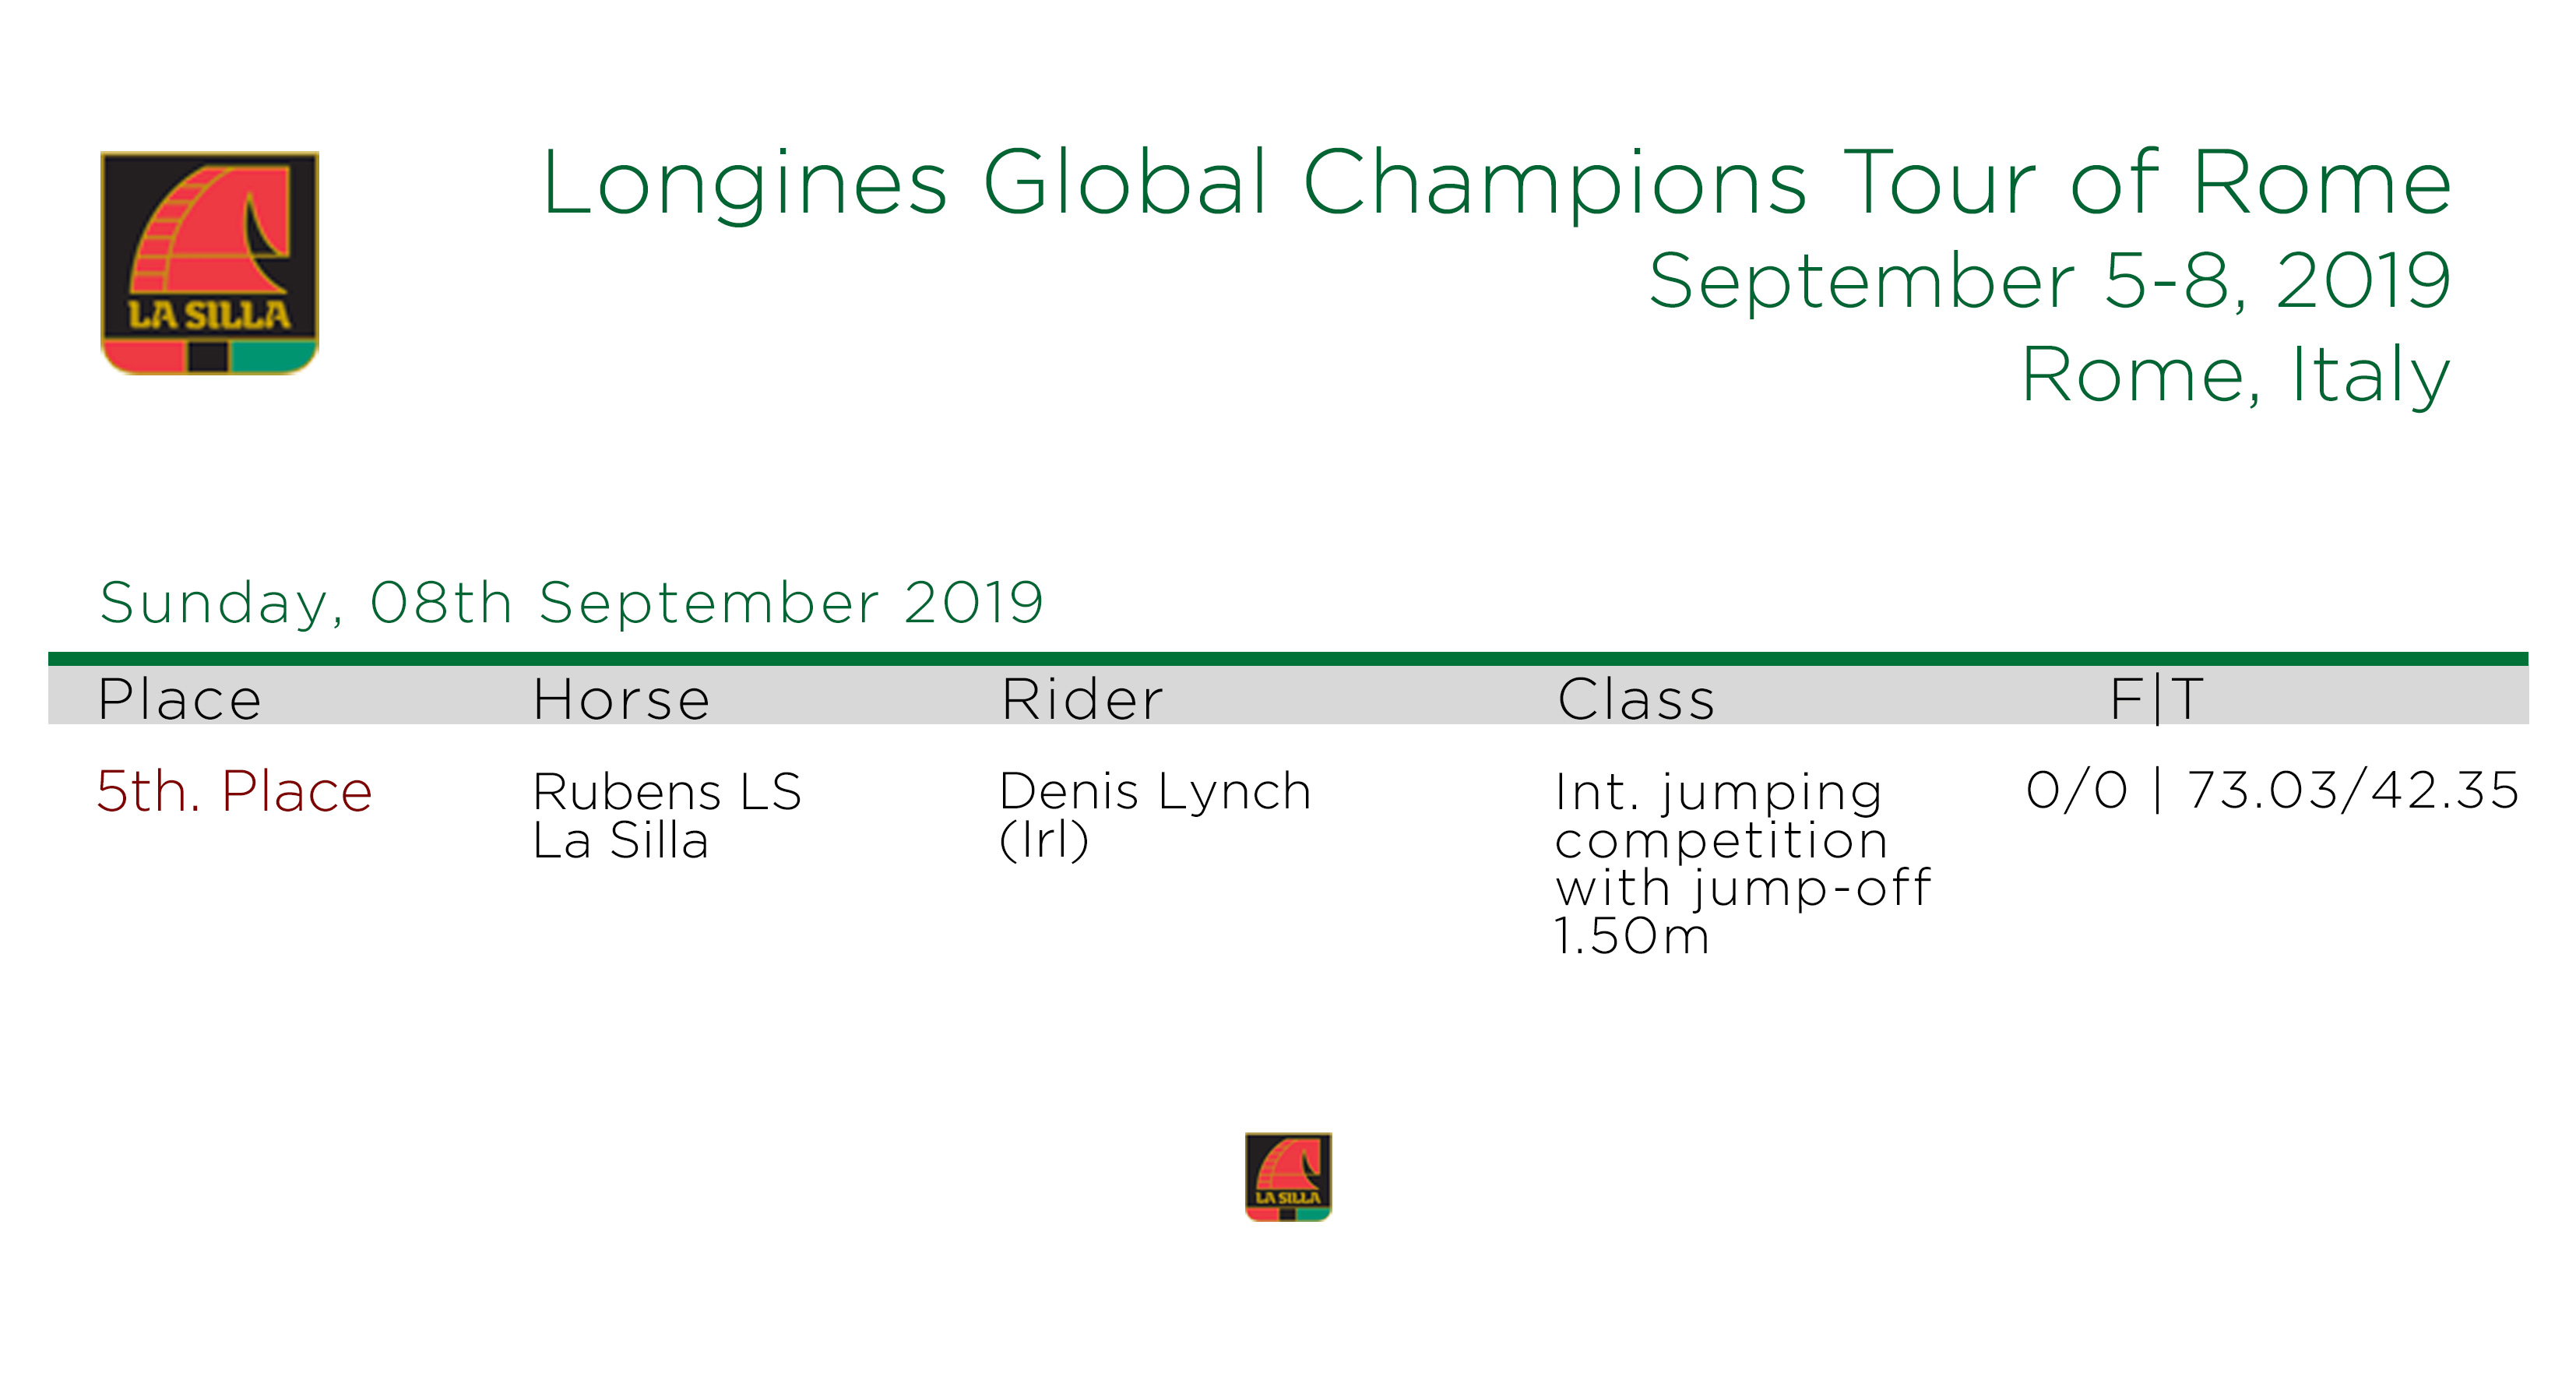 LONGINES-Global-Champions-Tour-of-Rom-Sept-5-8-2019-